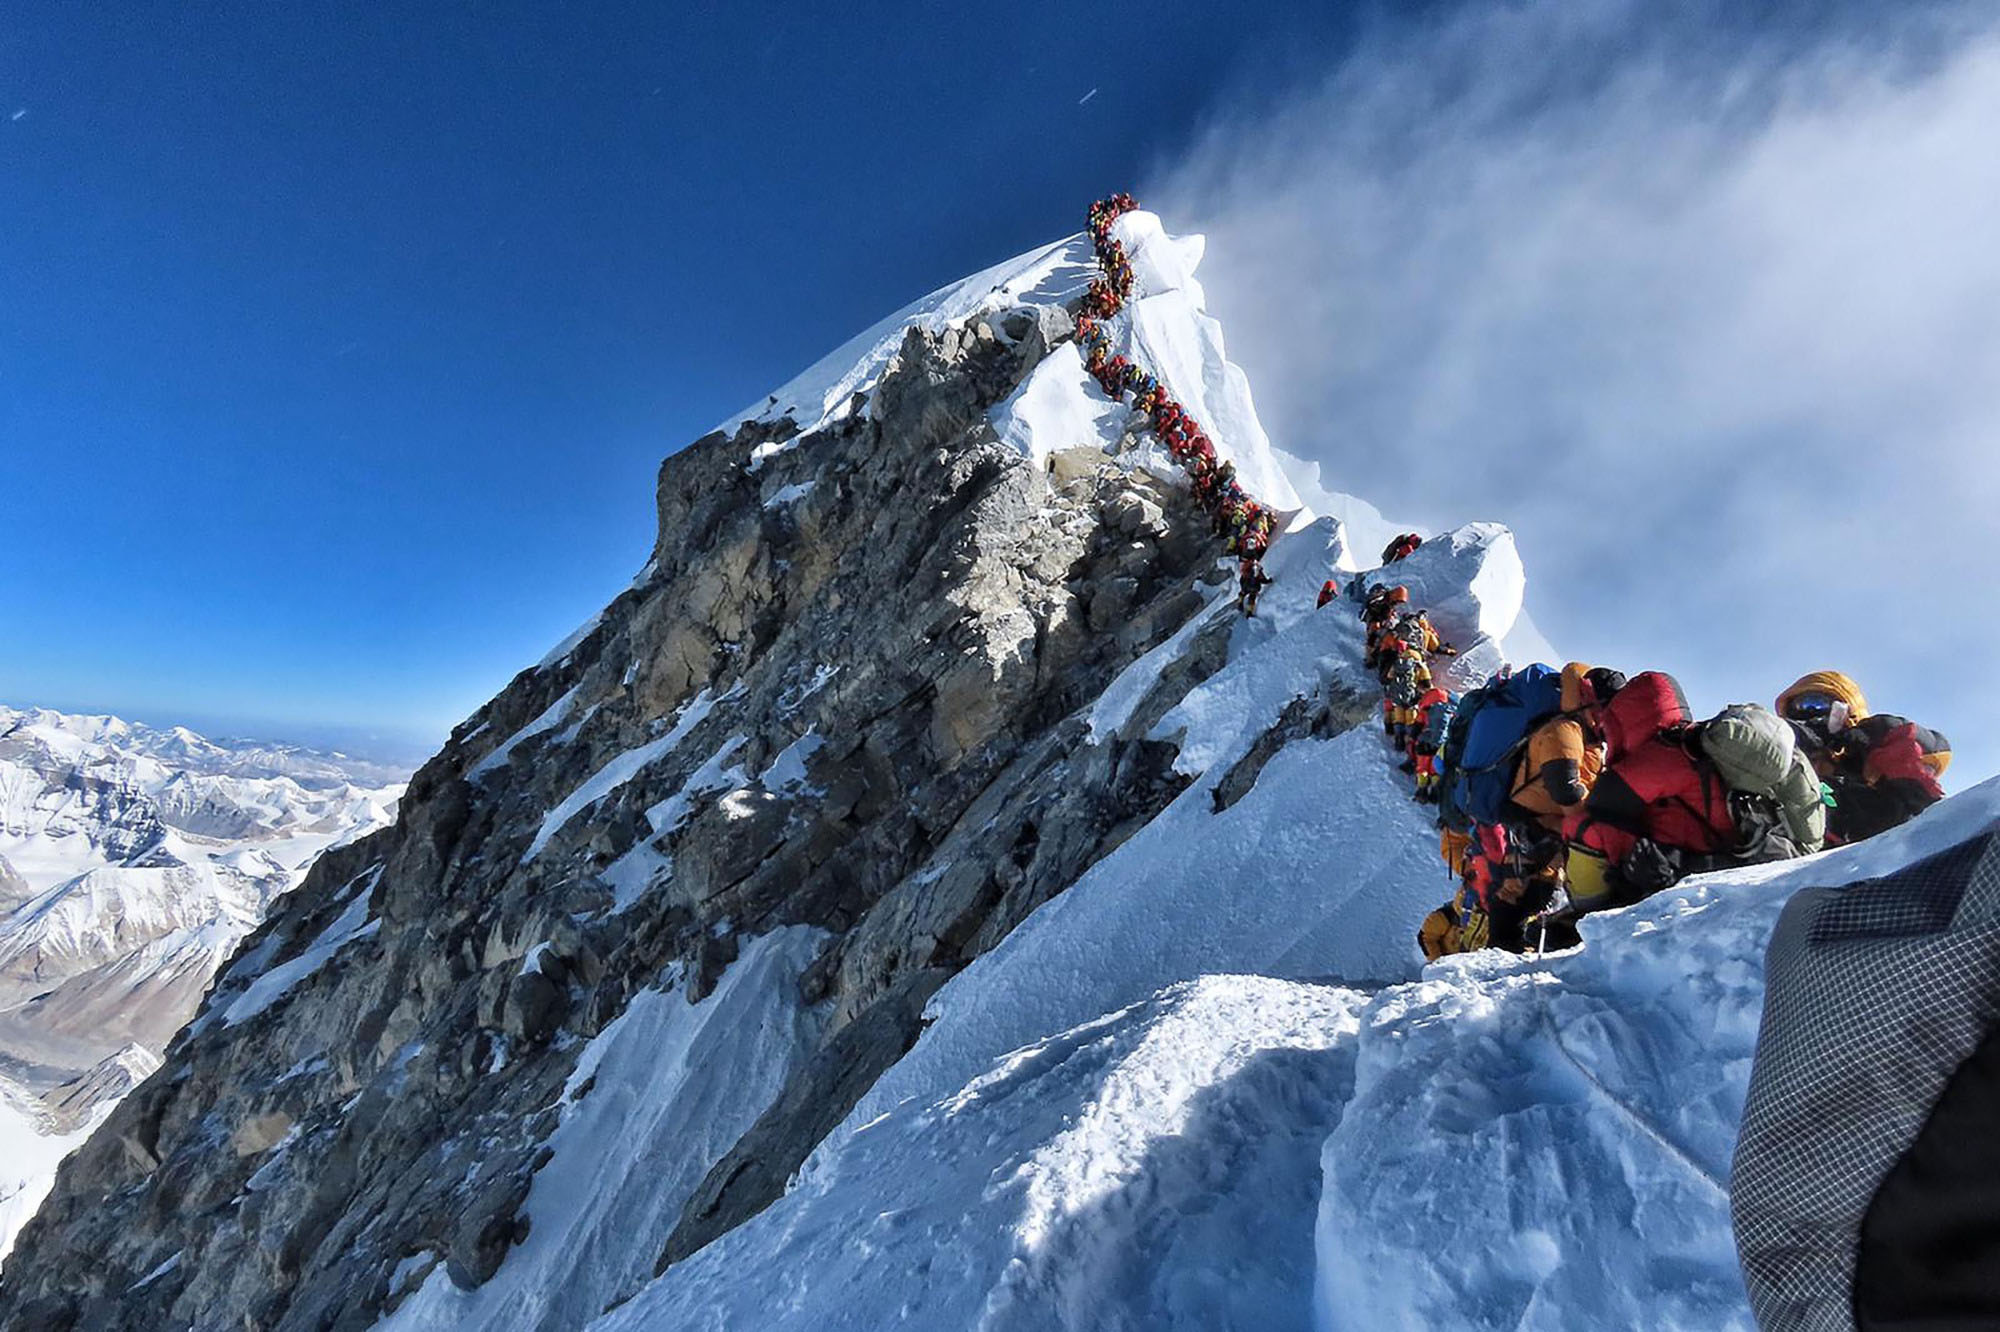 Dozens of climbers wait in line to reach the summit of Mount Everest on May 22. | AFP-JIJI